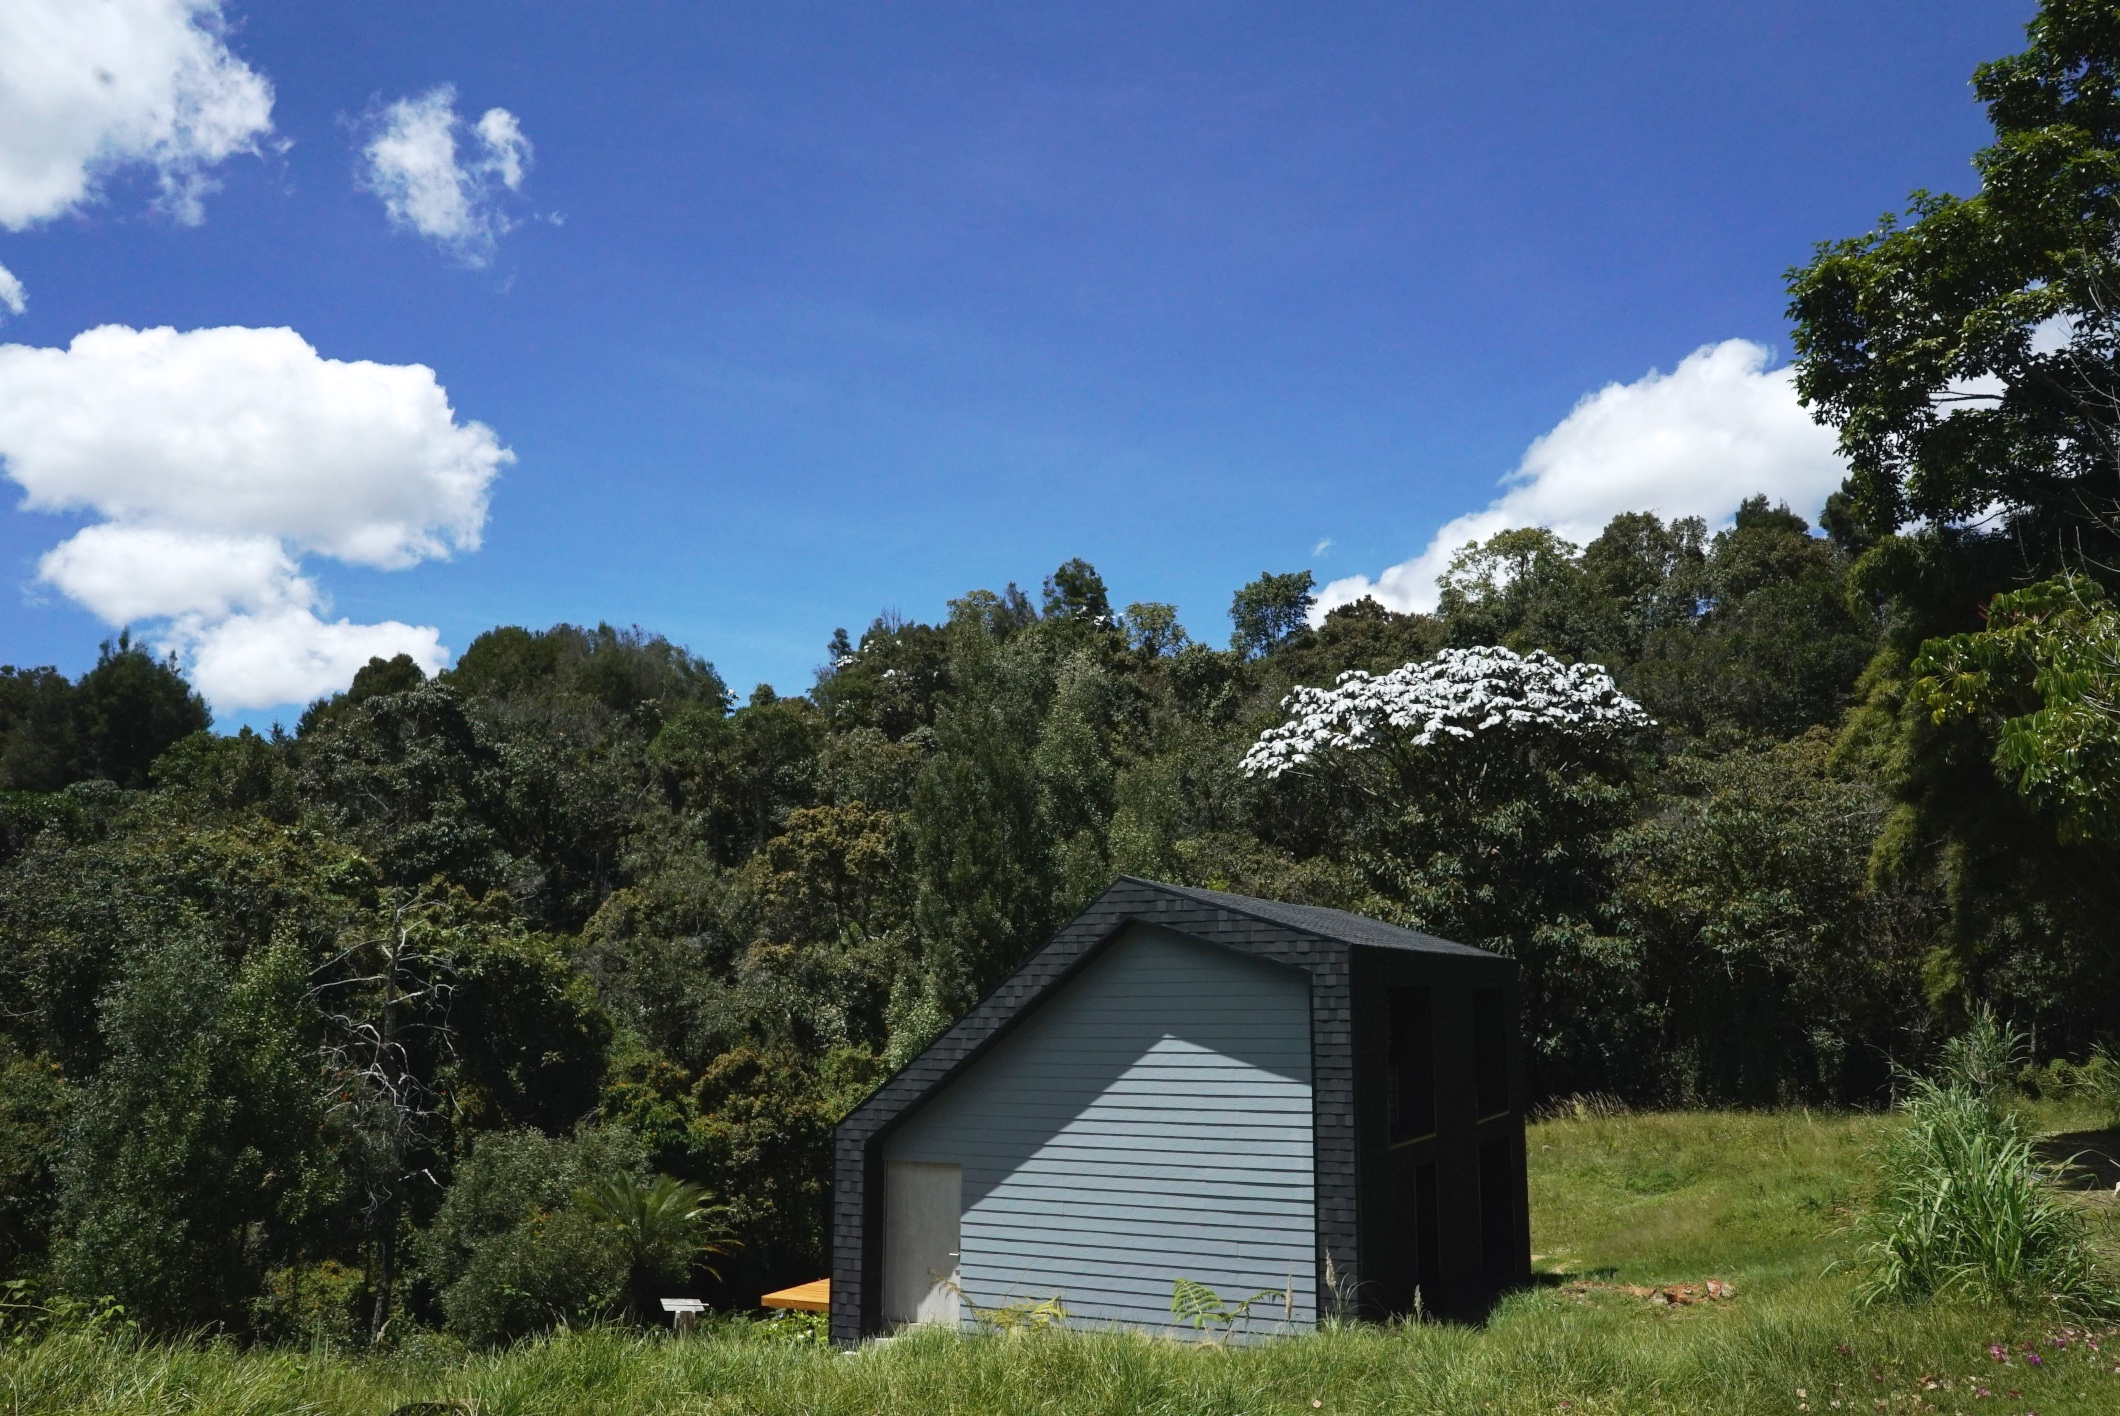 A prototype of Maker Home in Rionegro, near Medellin, another initiative of TuTaller Design.